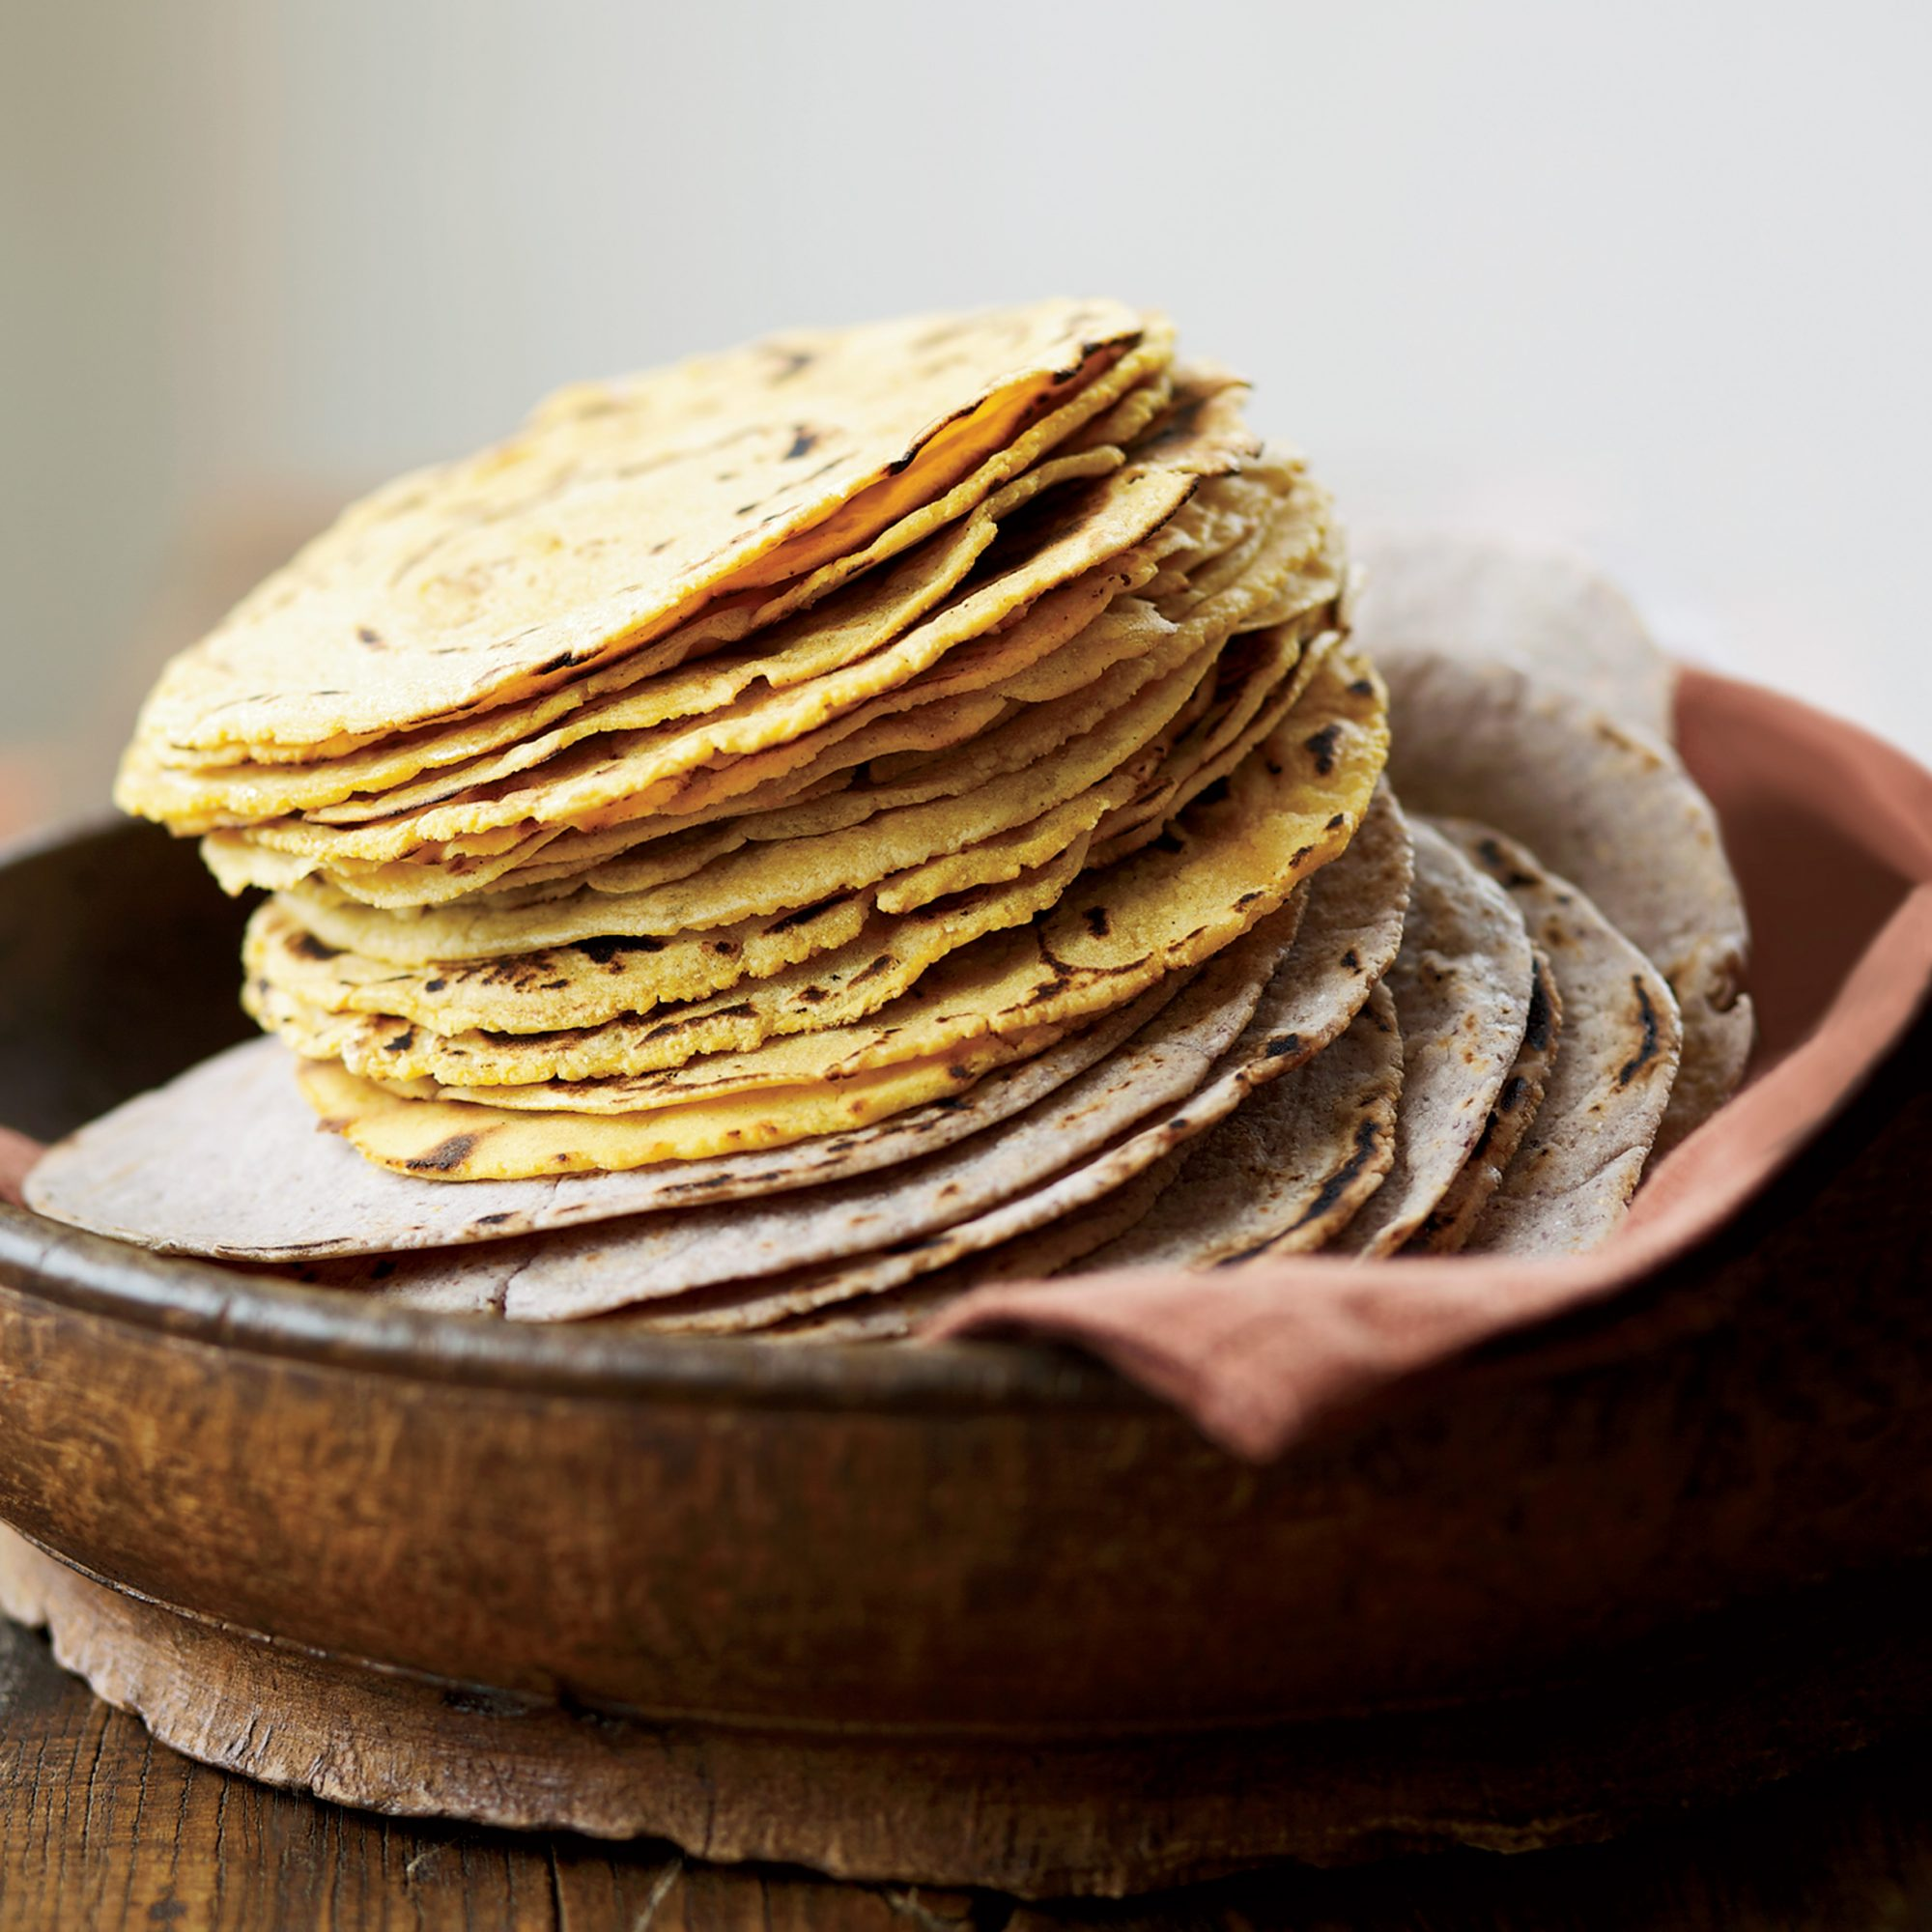 200911-r-corn-tortillas.jpg